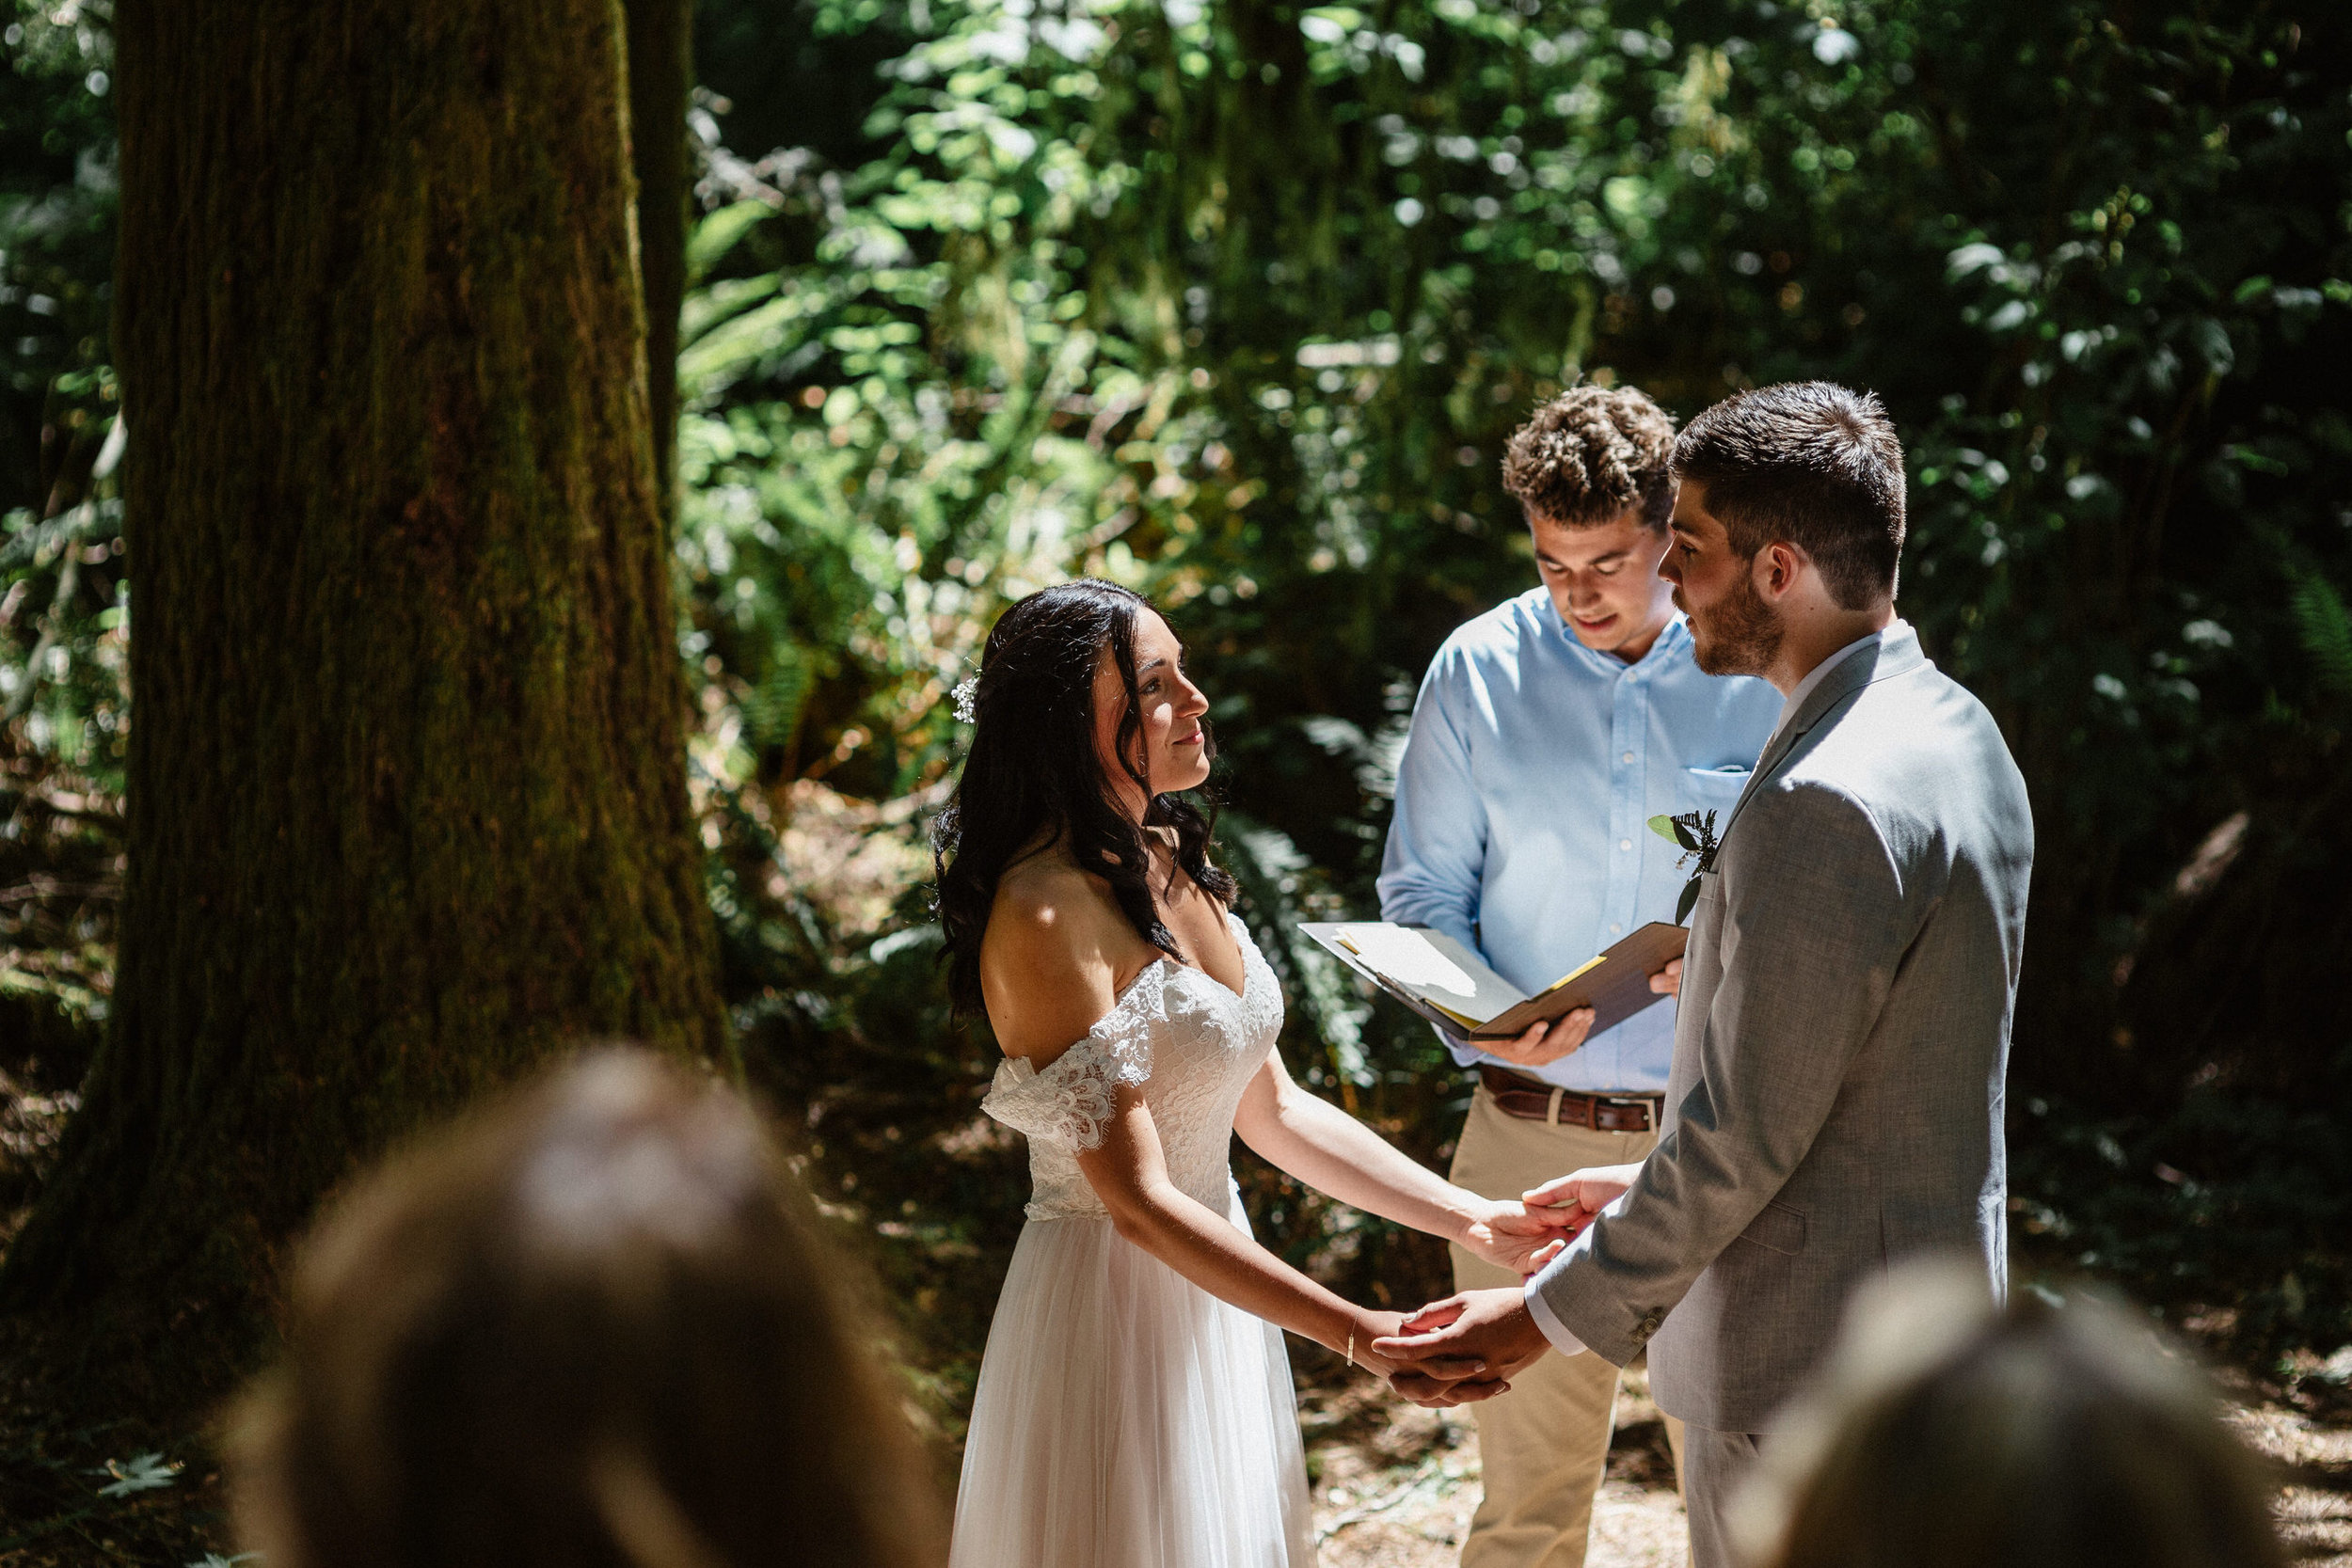 MT Hood Wildwood elopement wedding oregon portland photography0031.JPG